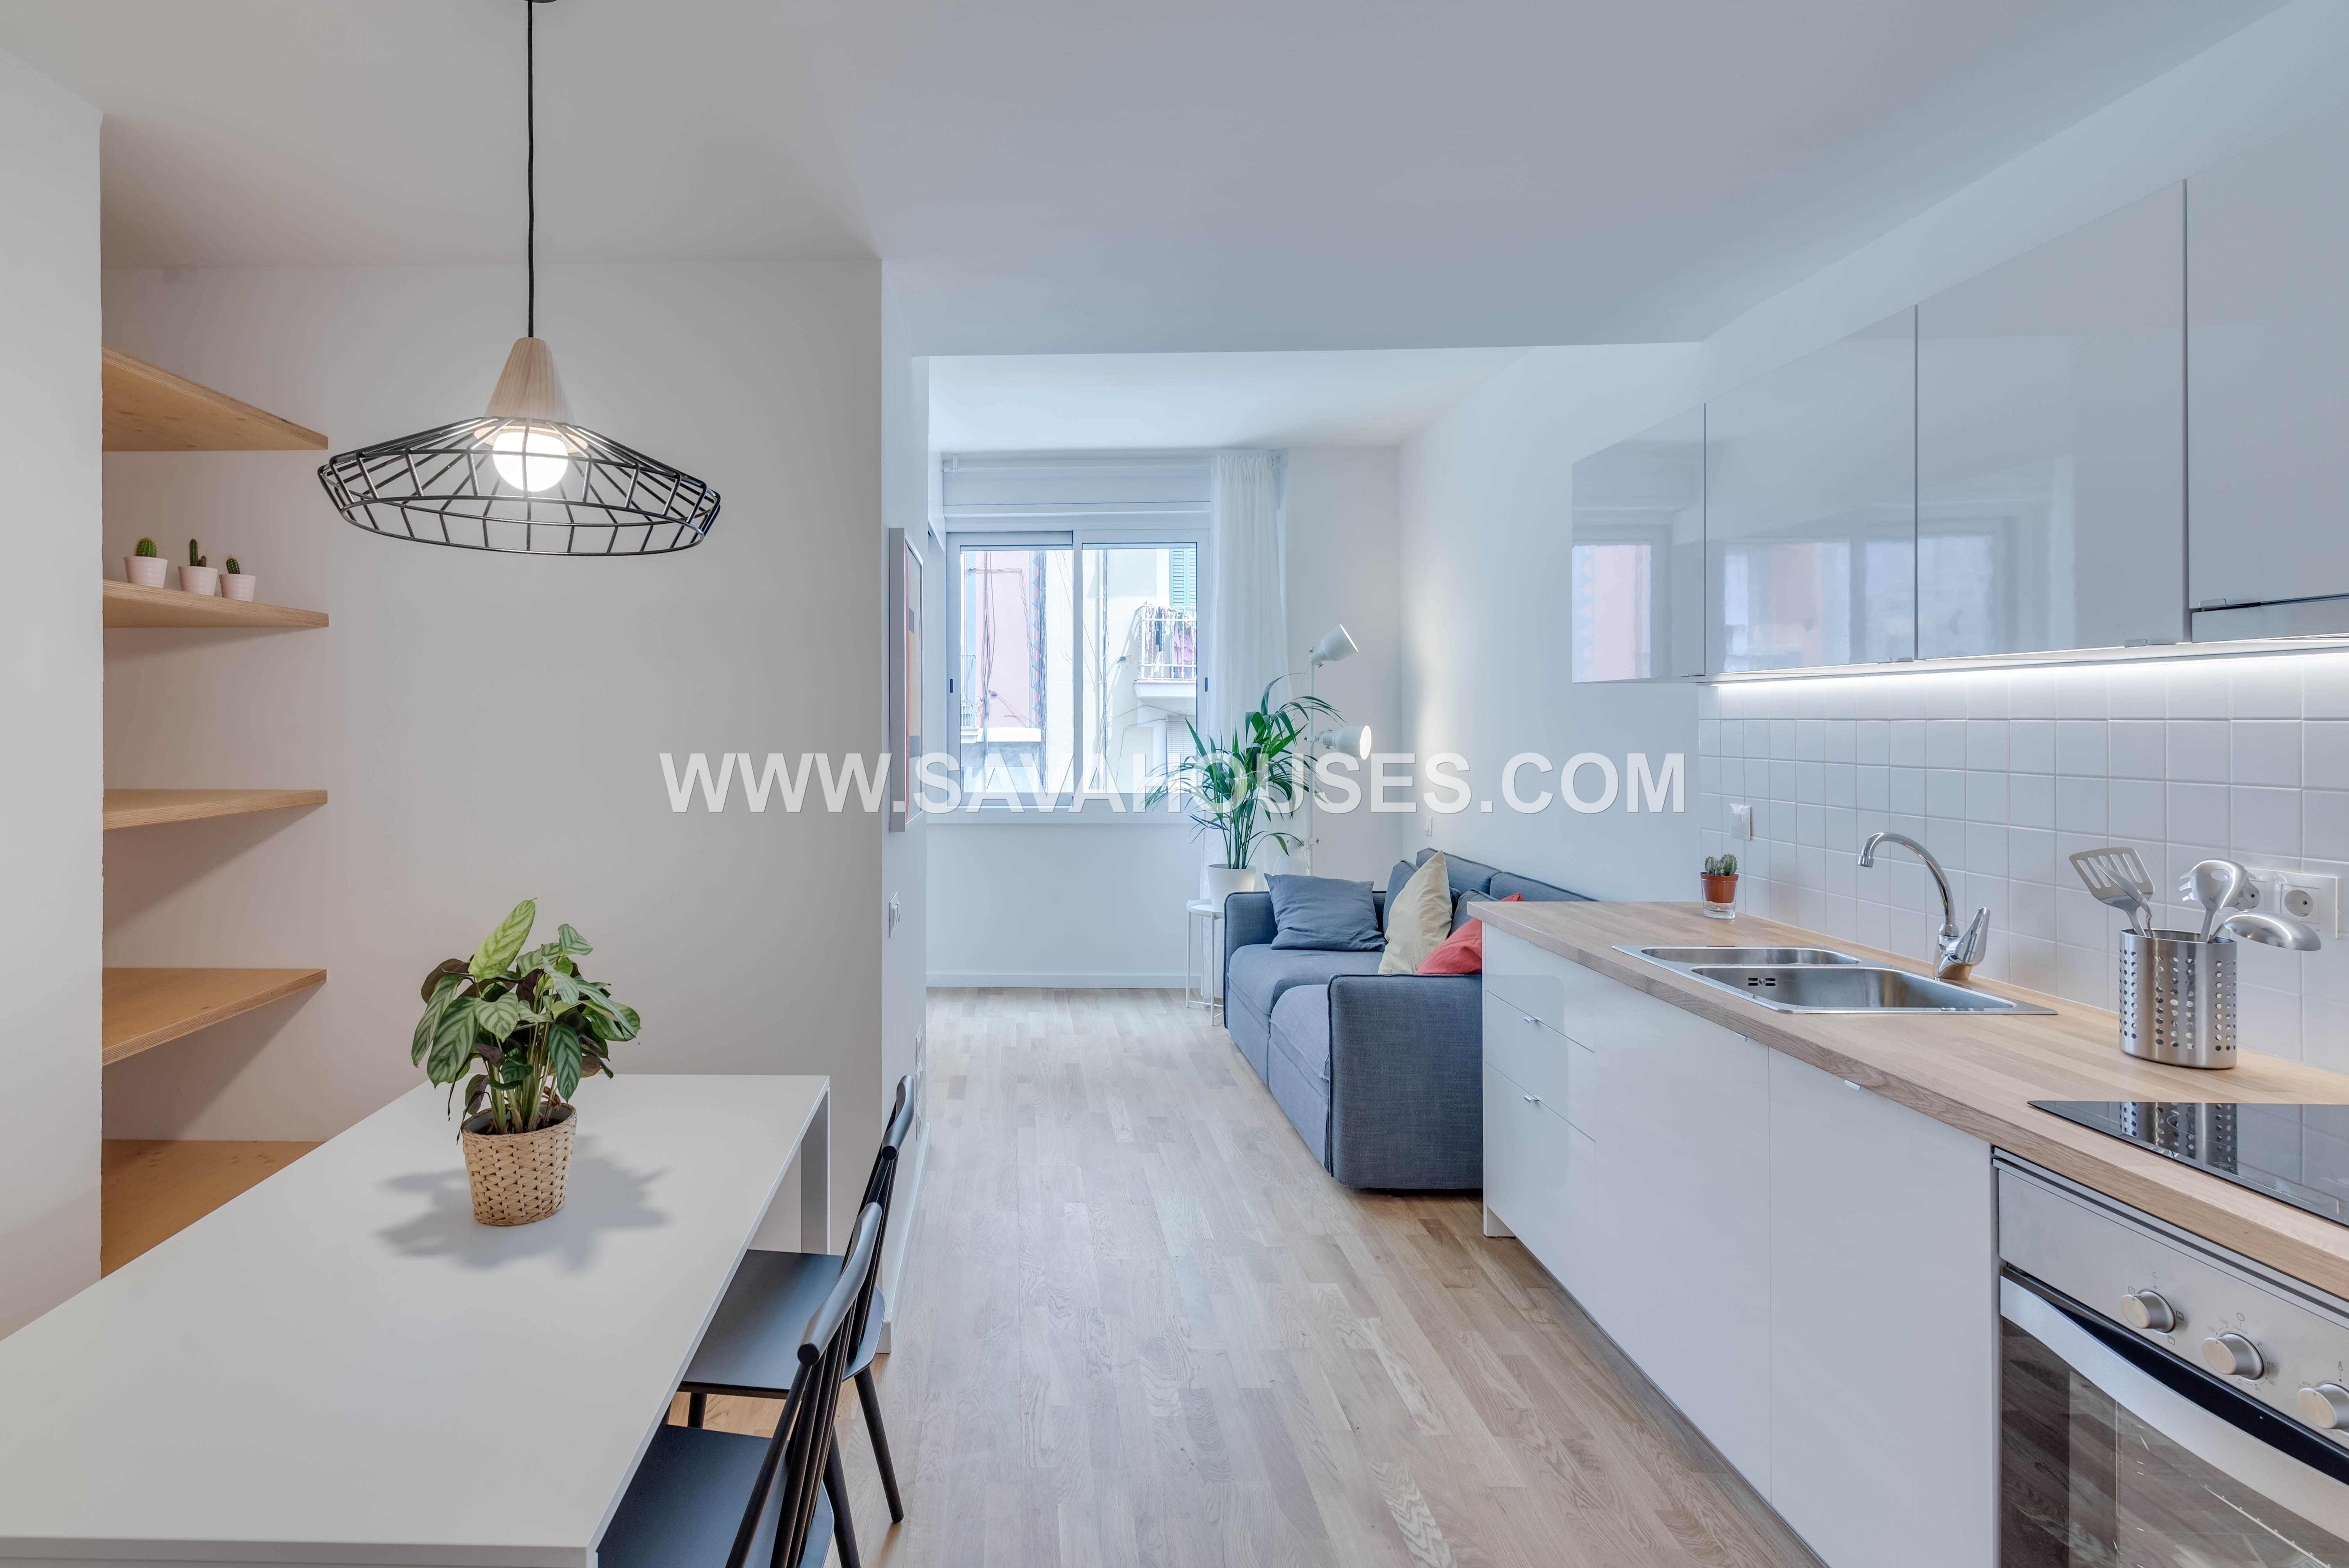 Wonderful Flat Completely Renovated In Poble Sec Savahouses # Muebles Poble Sec